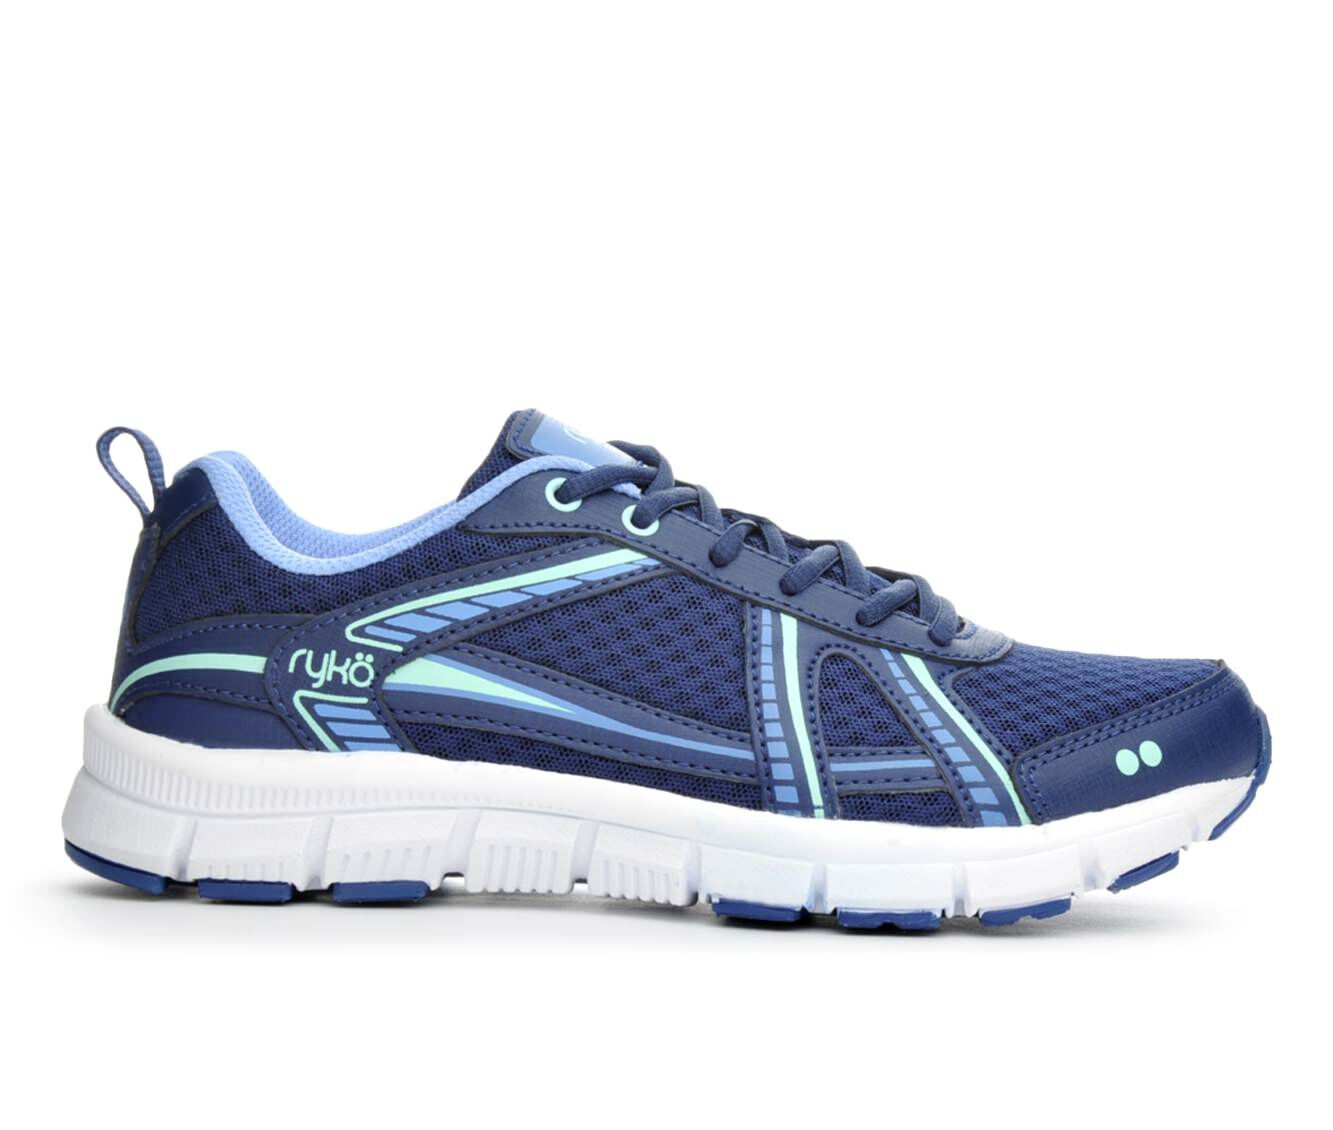 Ryka Hailee Women's Cross ... Training Shoes outlet 2014 newest HVSl4Wvg